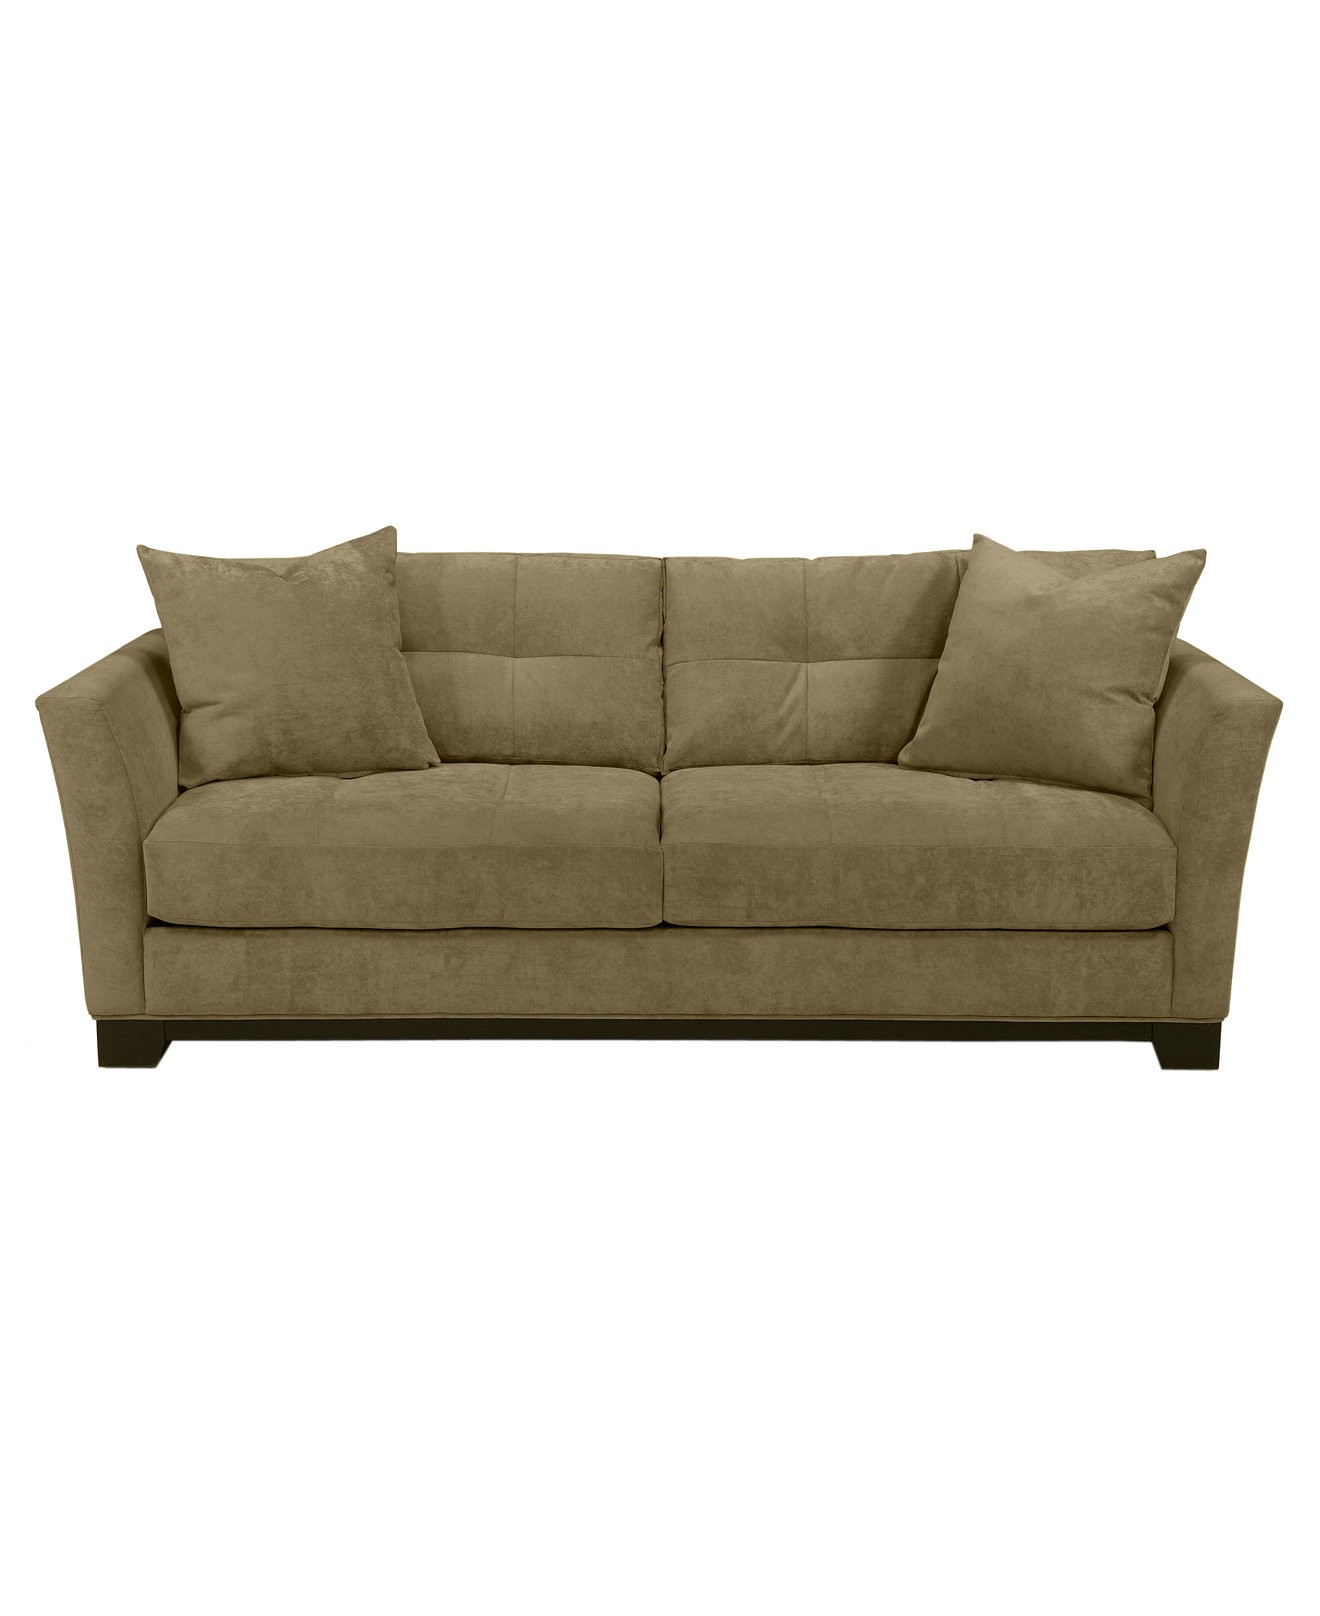 Sofa Bed Macys Lovely Wide Elliot Fabric Microfiber Queen Sleeper sofa Bed Couches Gallery